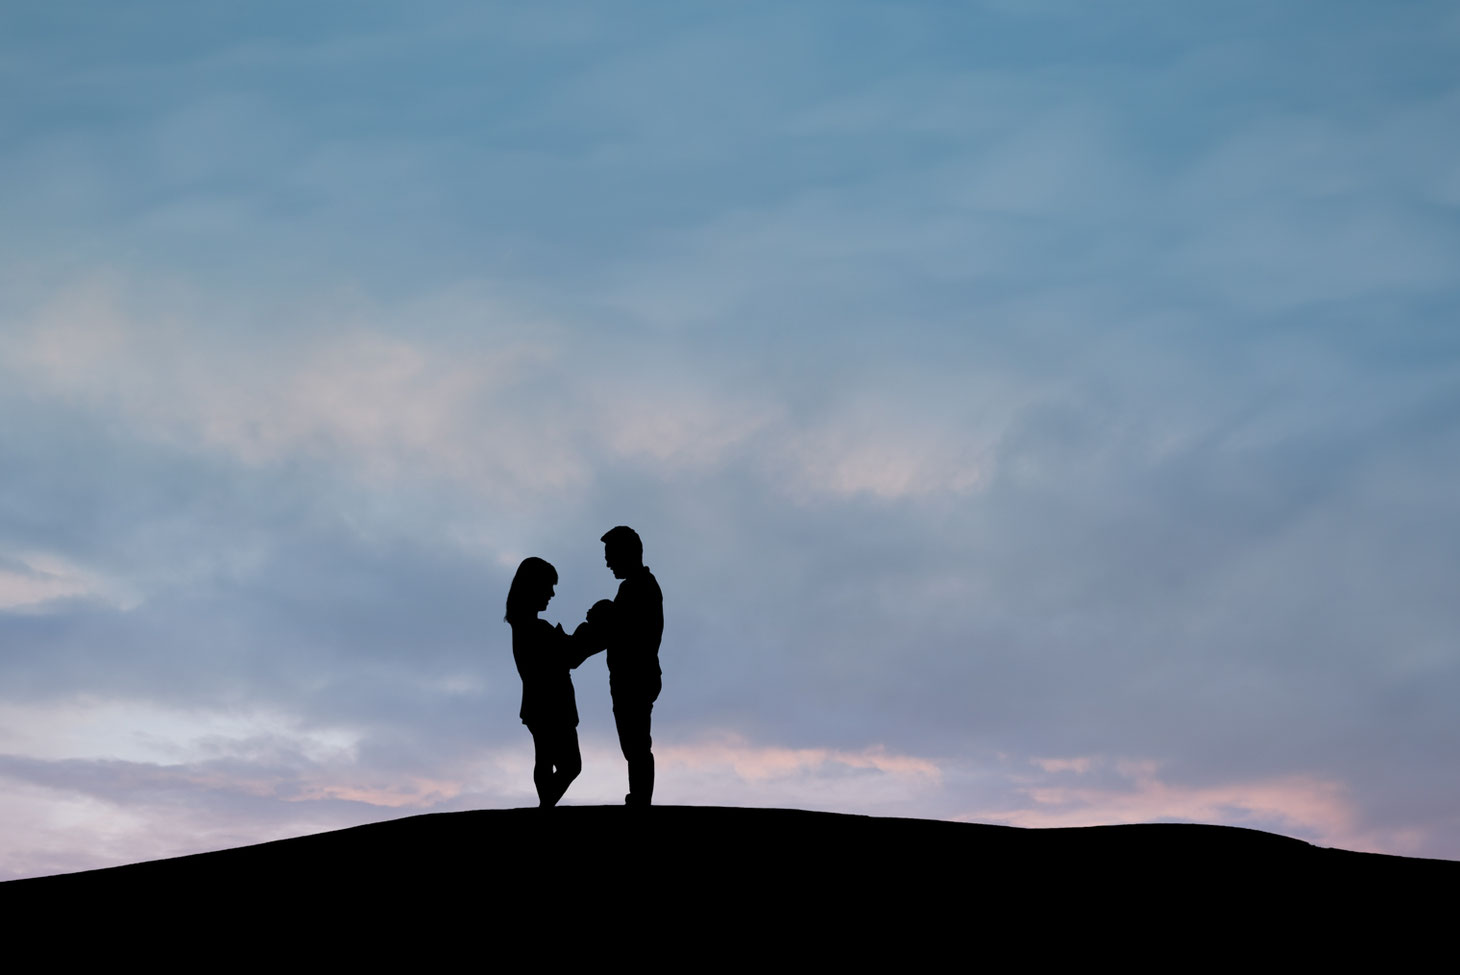 silhouette of mother, new baby, and father on a hill against a blue and pink sky with clouds